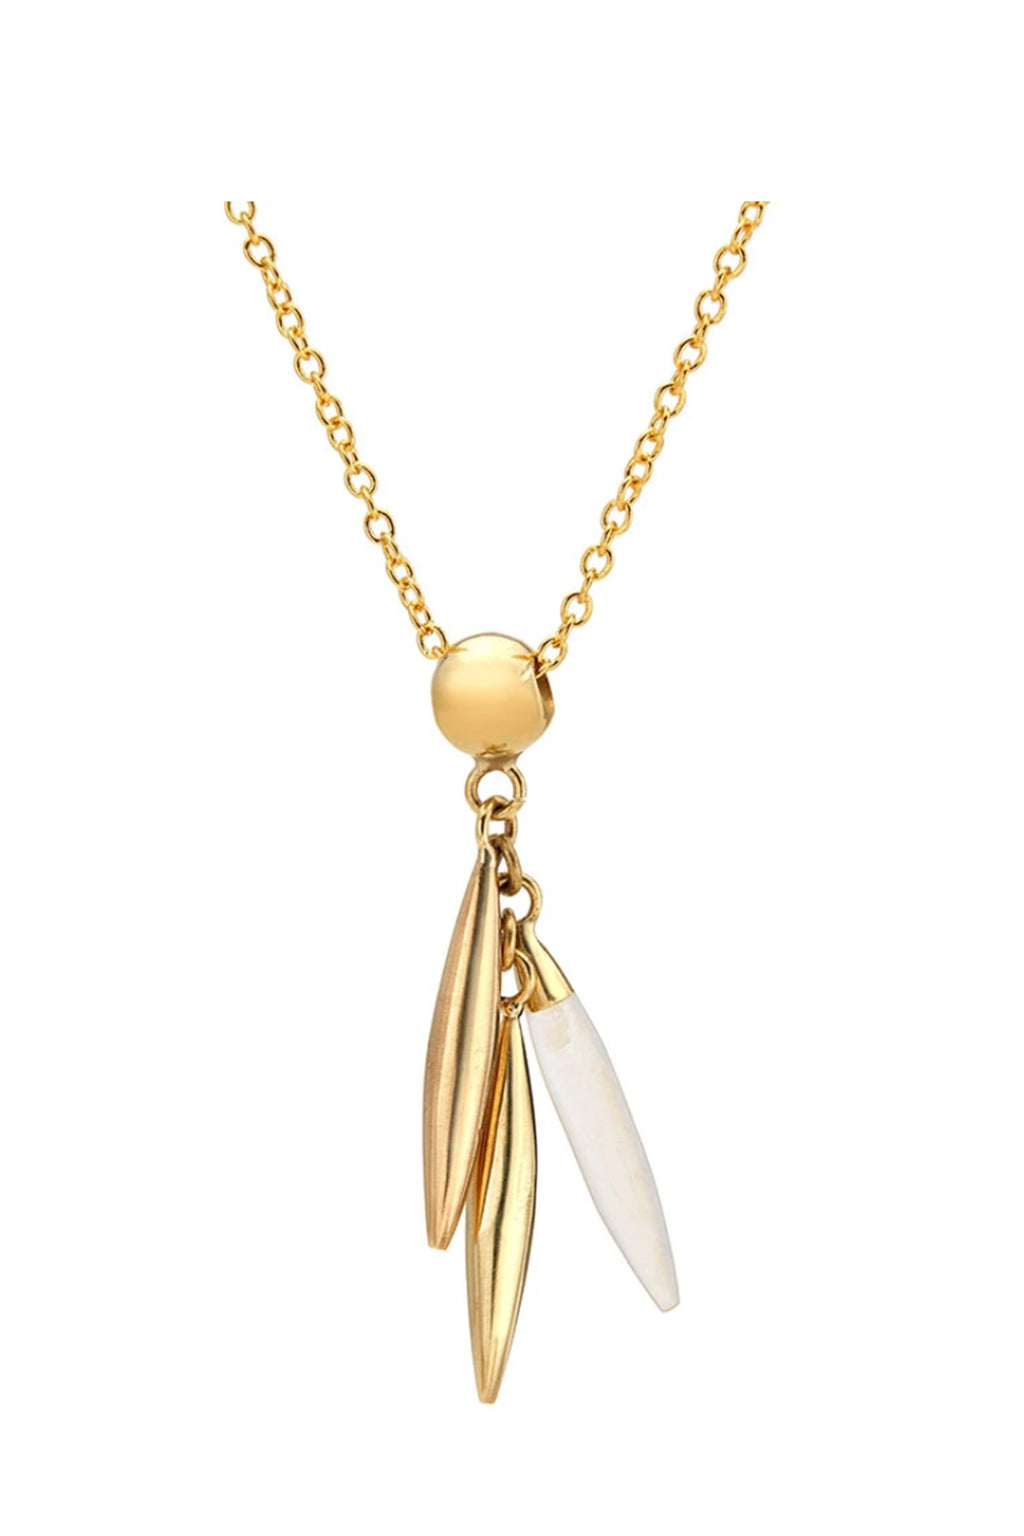 Soko Mini Quill Delicate Necklace in Gold/ White